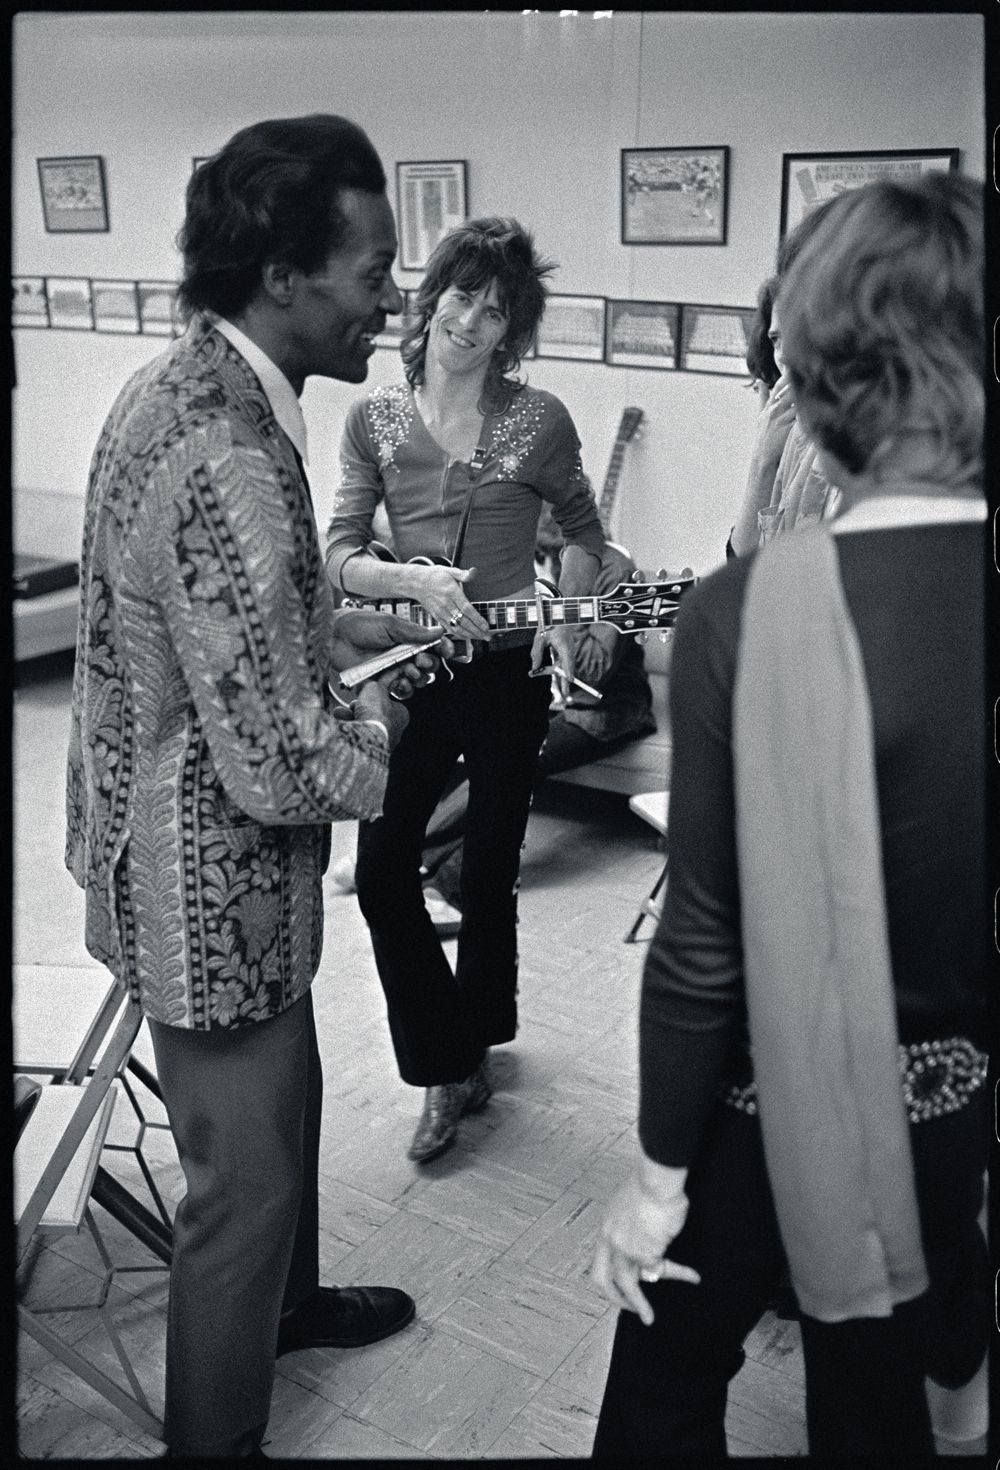 Chuck, Keith and Mick